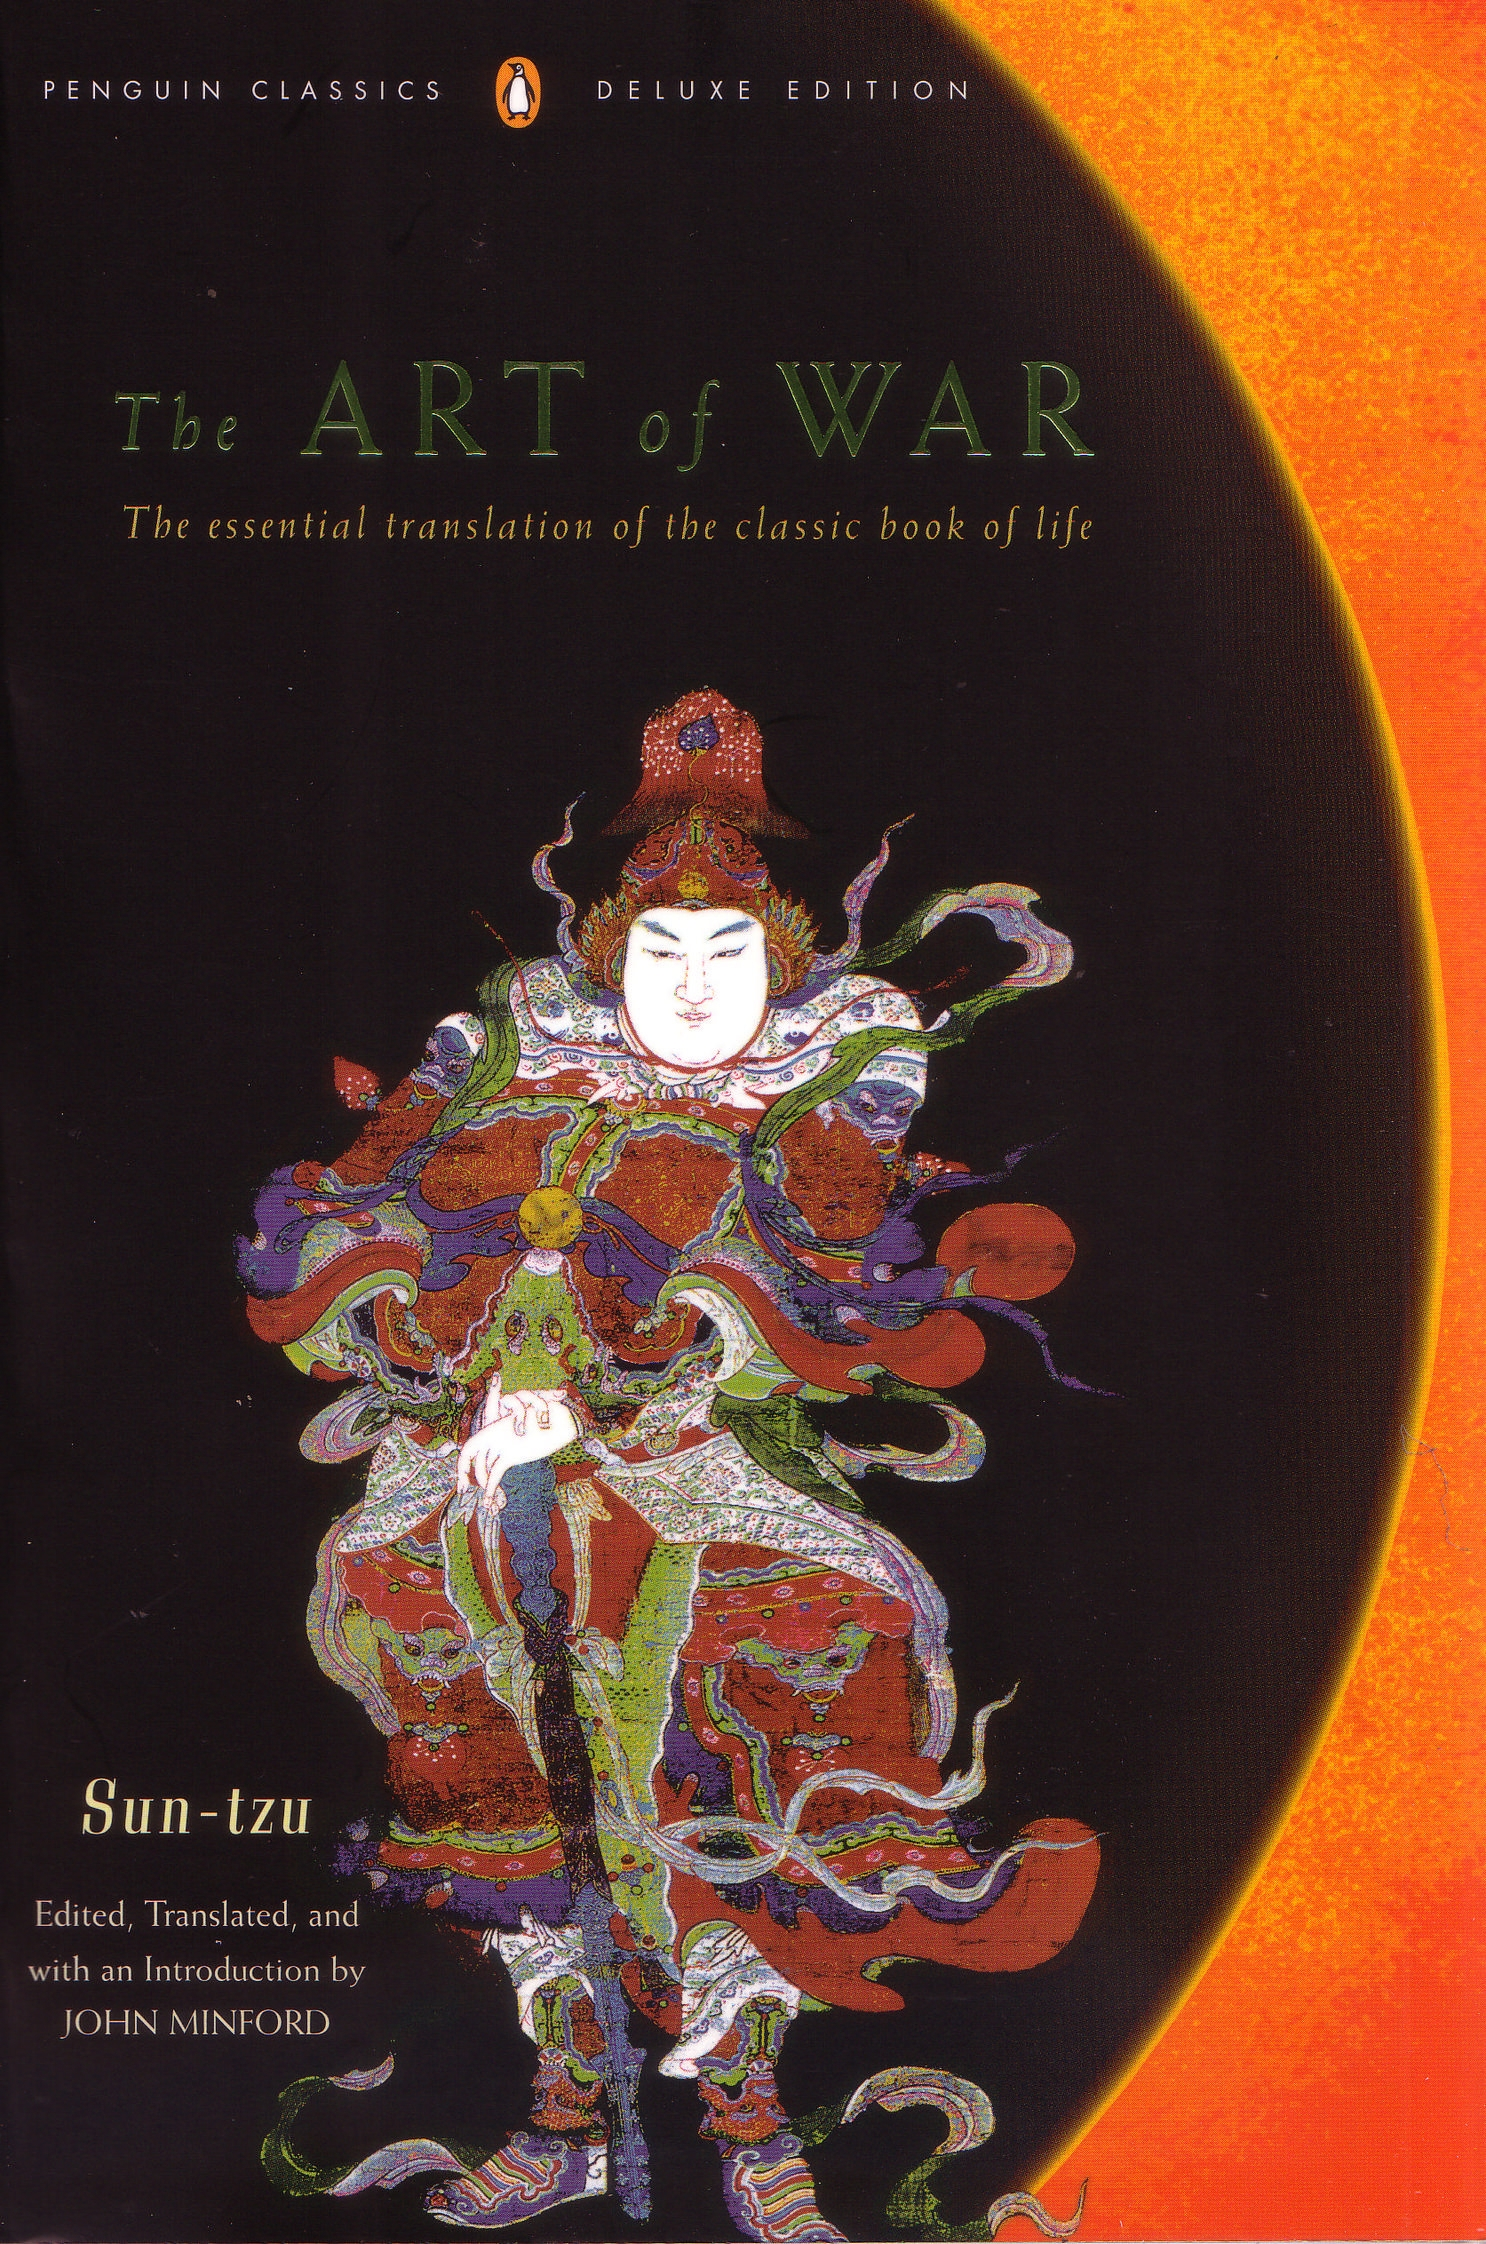 Penguin Book Cover Carrie S War : The art of war penguin classics deluxe edition